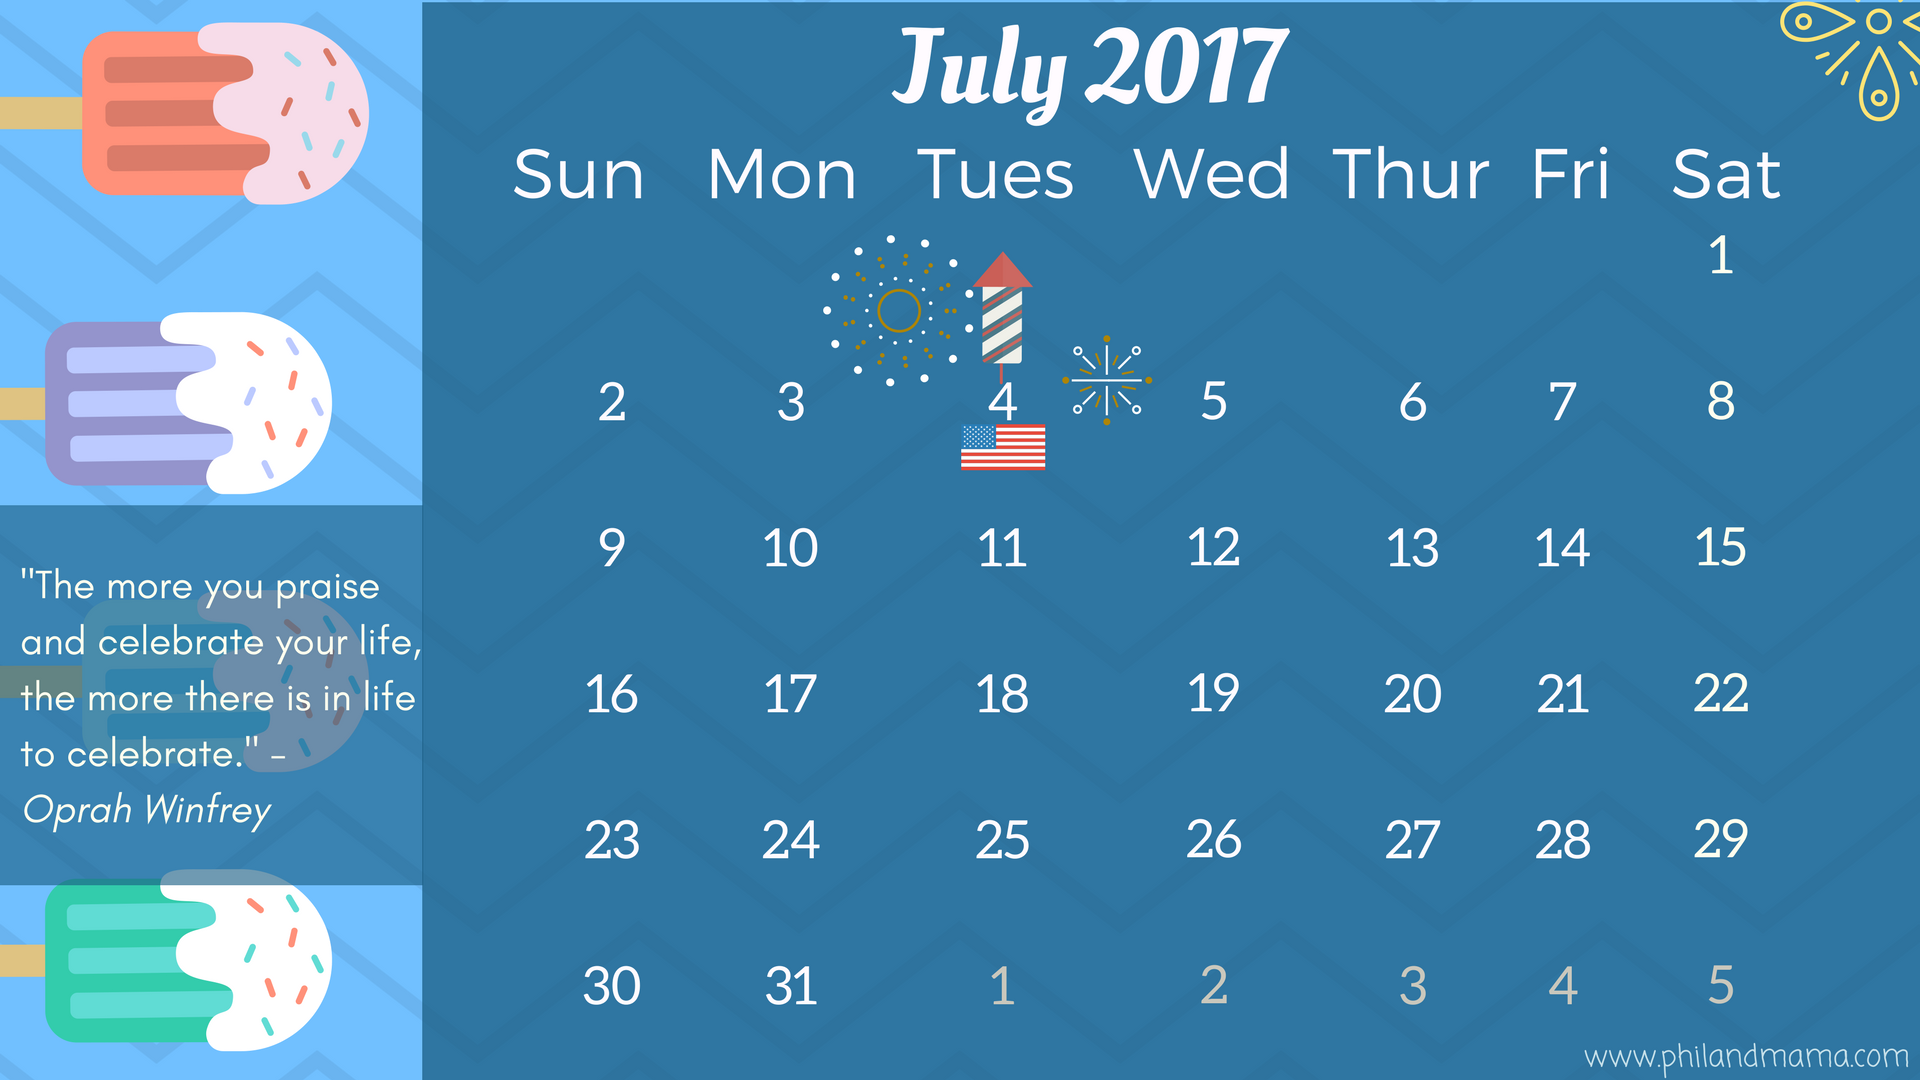 July 2017 FREE PRINTABLE CALENDAR.CLICK ON THE IMAGE FOR THE PDF FILE. FOR THE IMAGE FILE, RIGHT-CLICK AND SAVE AS.